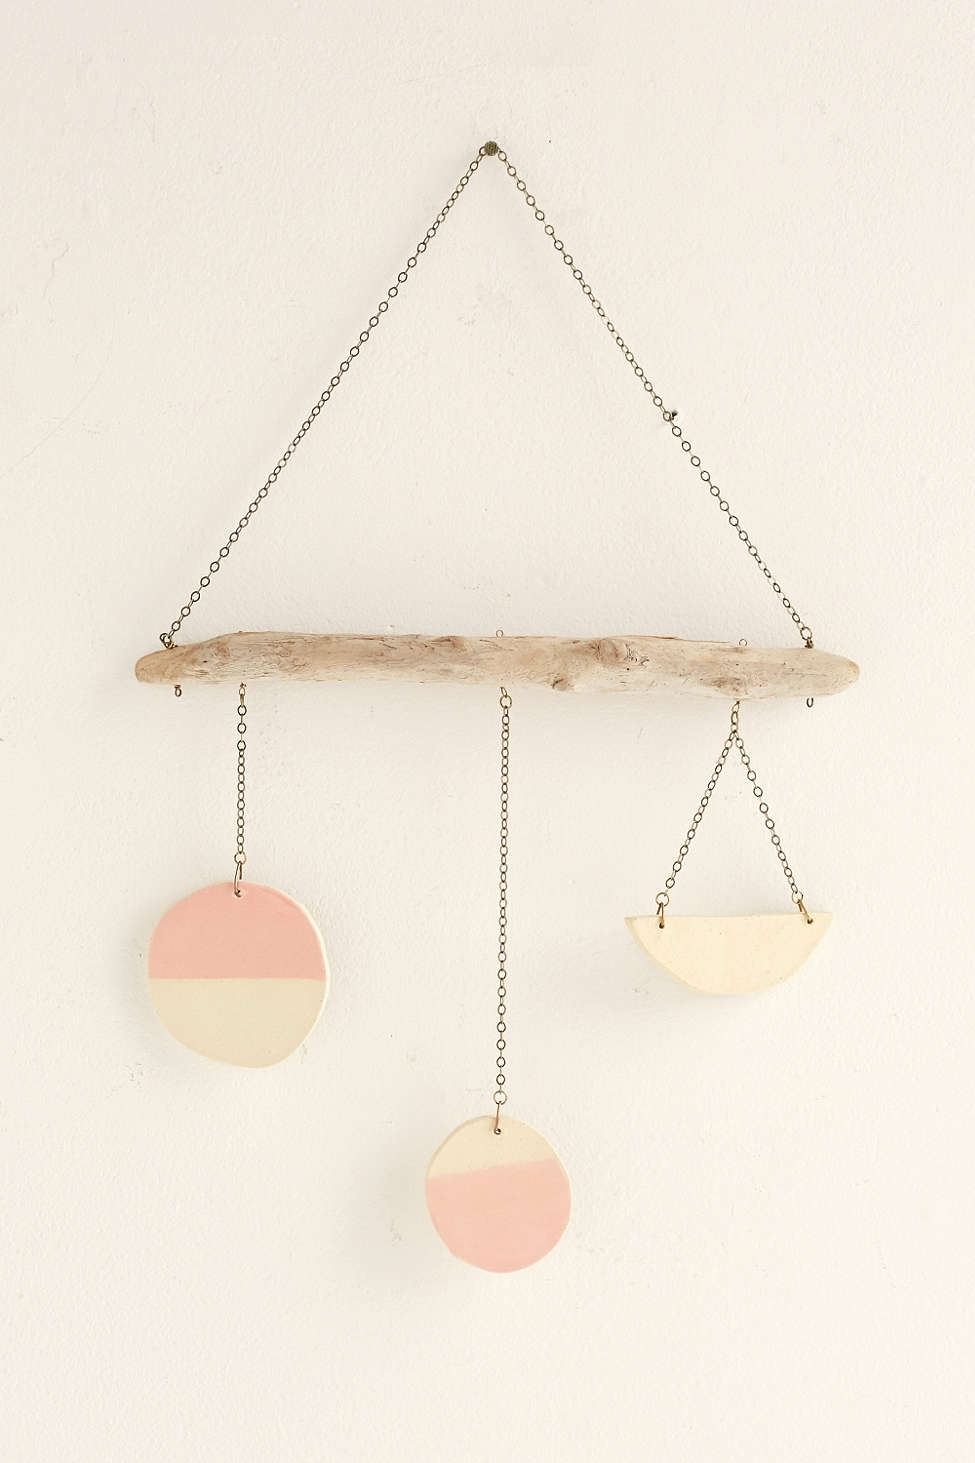 Urban Outfitters Wall Art – Unavocecr Intended For Most Up To Date Urban Outfitters Wall Art (View 16 of 20)